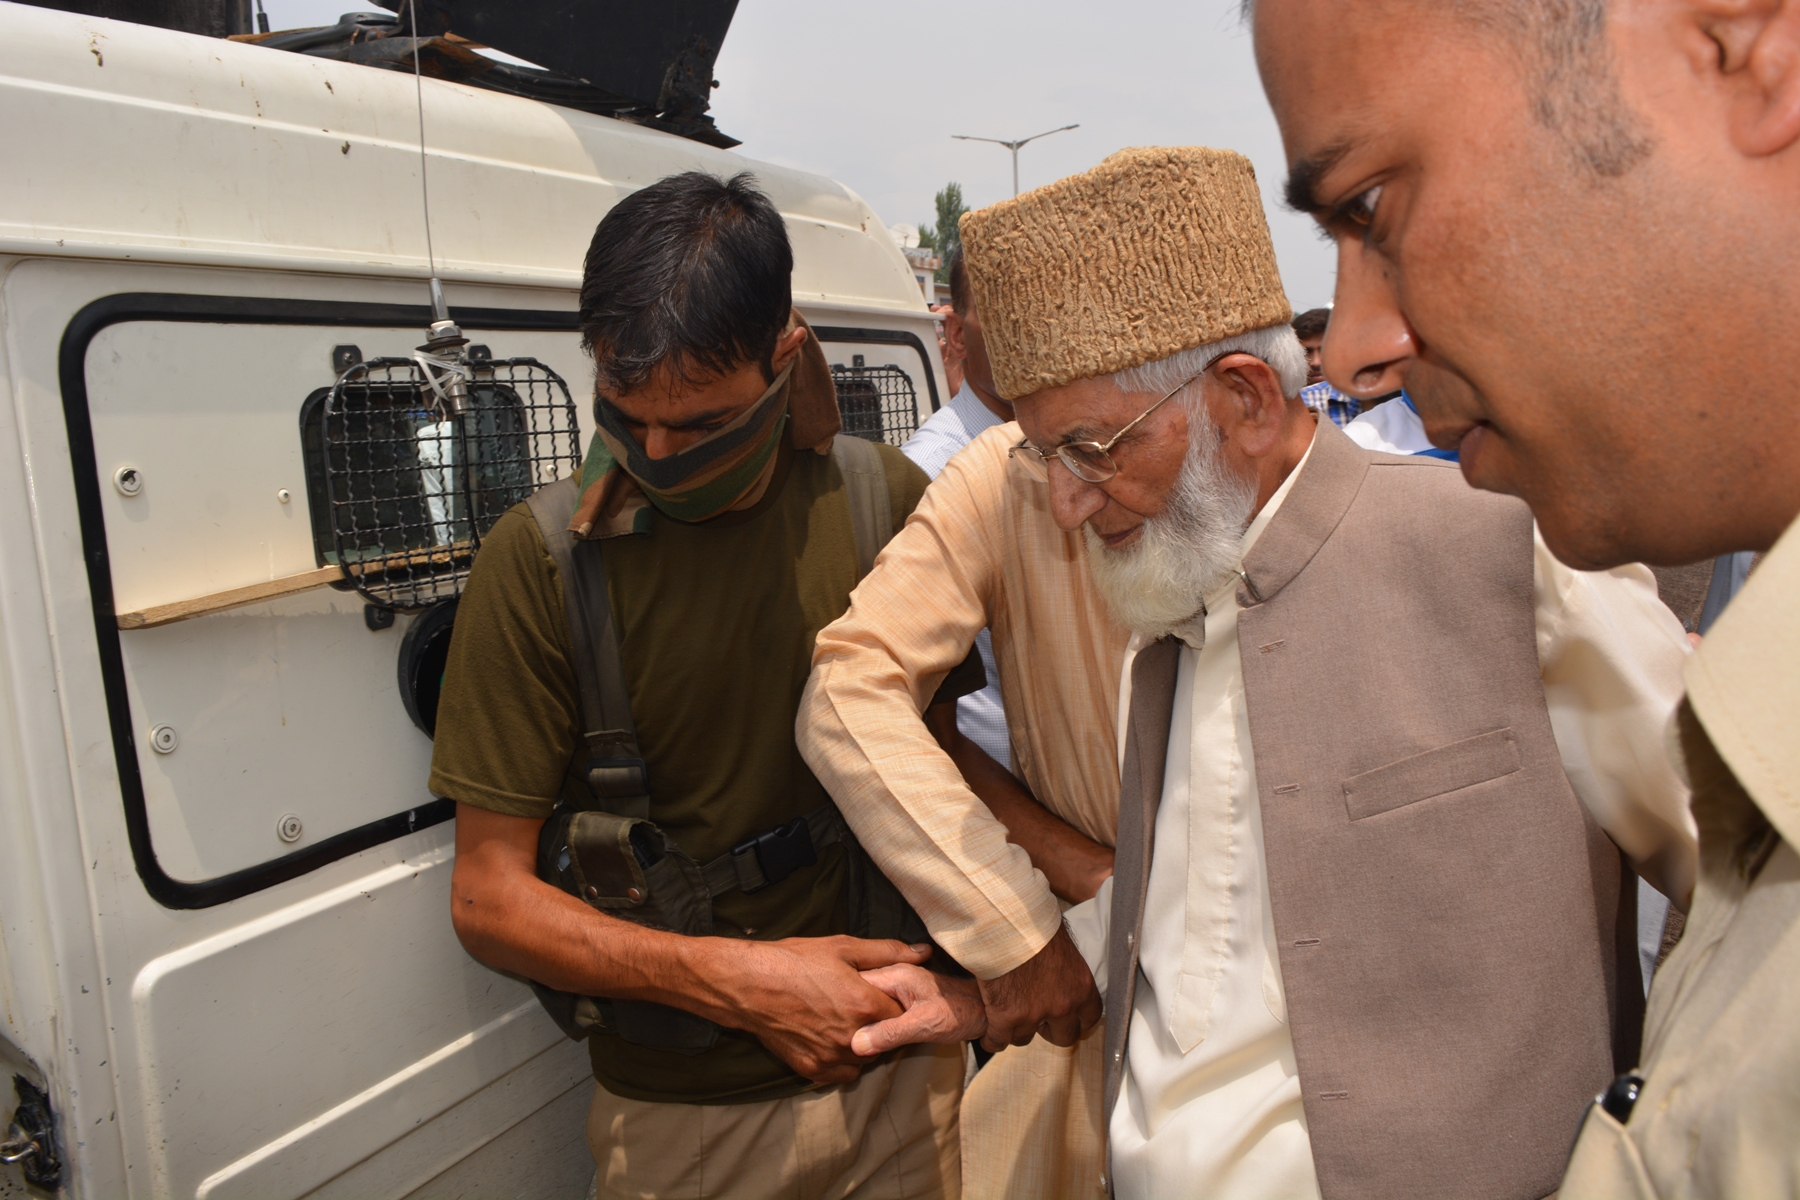 Chairman APHC Syed Ali Geelani arrested by police outside his residence at New Airporat Road at 12:40 (noon) and was taken to Police Station Humhama. It is to mention here that the resistance leadership announced that on Monday (July 25), people in large numbers should move towards south Kashmir's Islamabad district and participate in a rally to be held at Lal Chowk there after the Zuhar (afternoon) prayers to express solidarity with people there and pay glowing tributes to the recent martyrs.